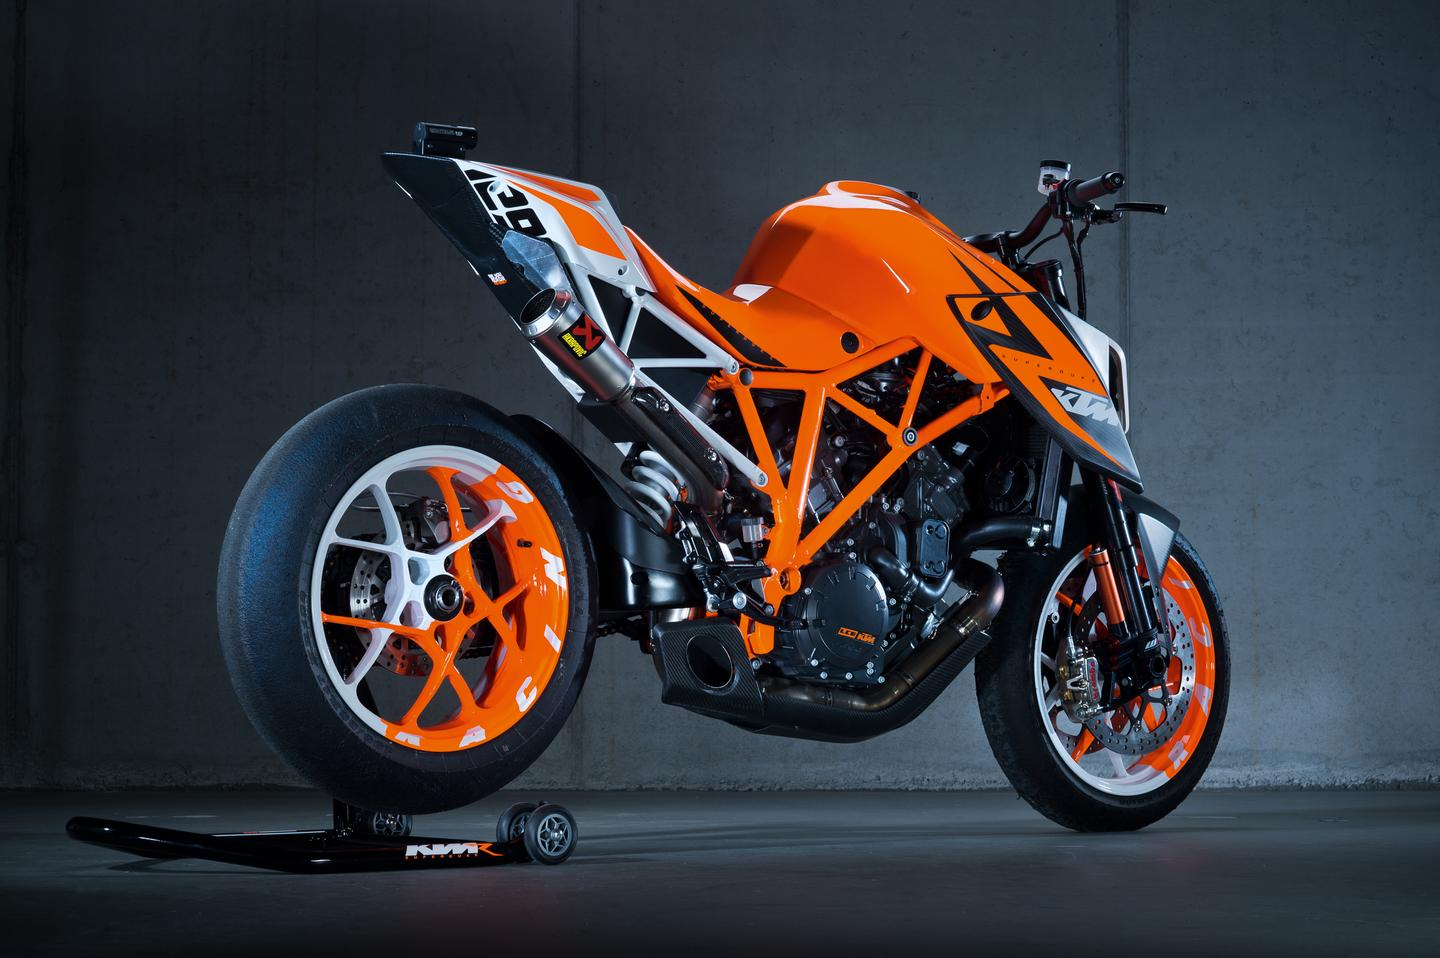 1290 Super Duke R prototype